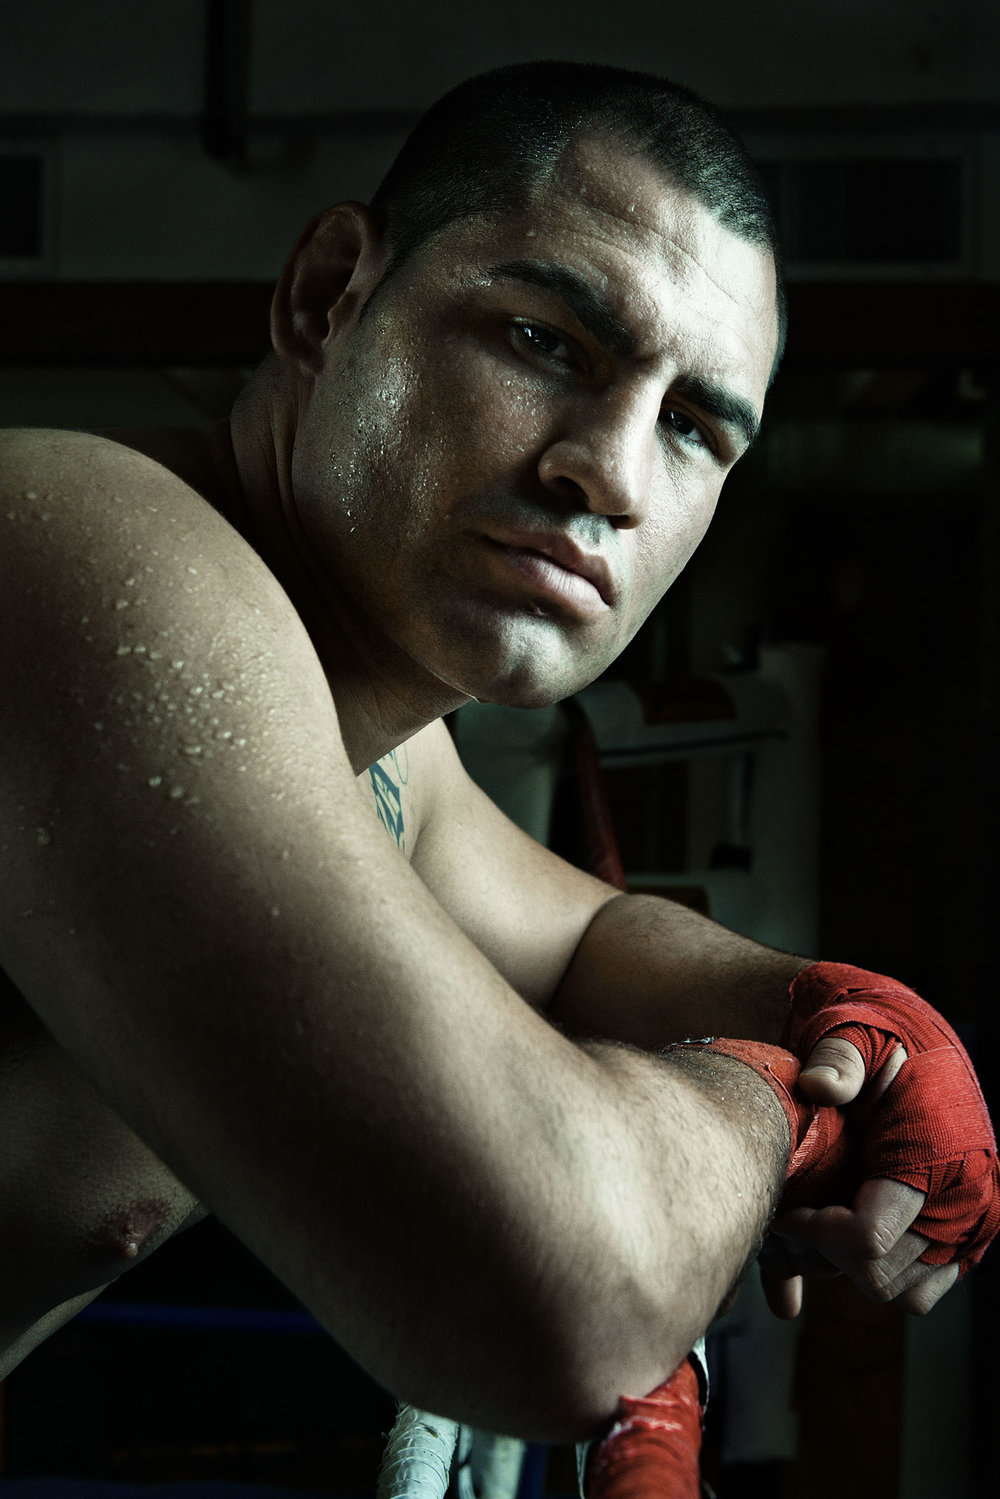 MMA Champion Cain Velasquez - New York City